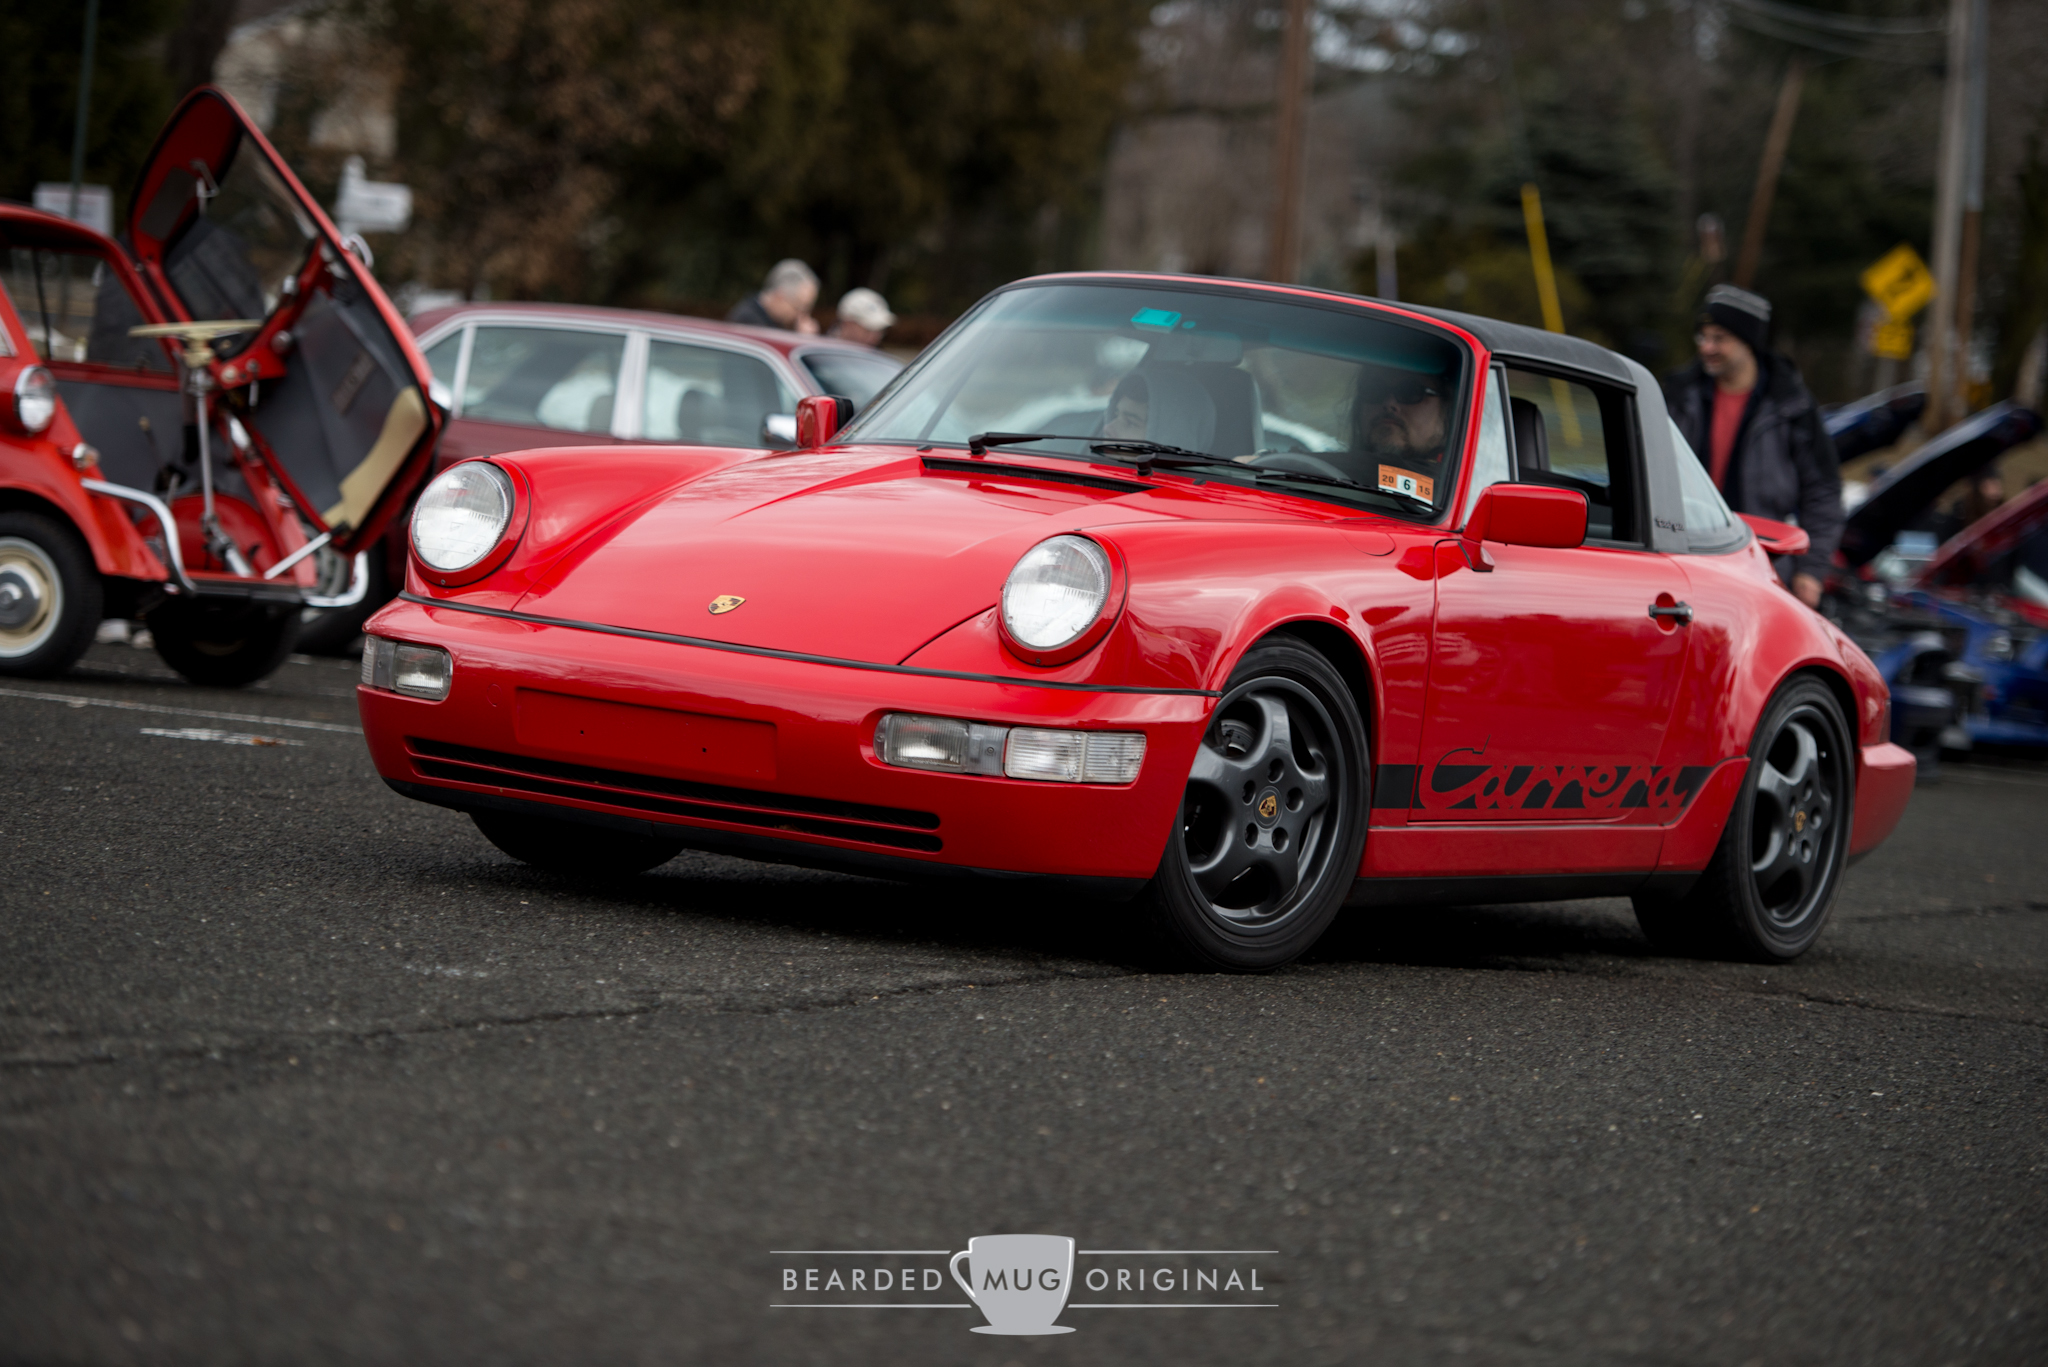 Jose and his minimally modified Guards Red 964 Carrera 2 Targa as seen leaving the lot.